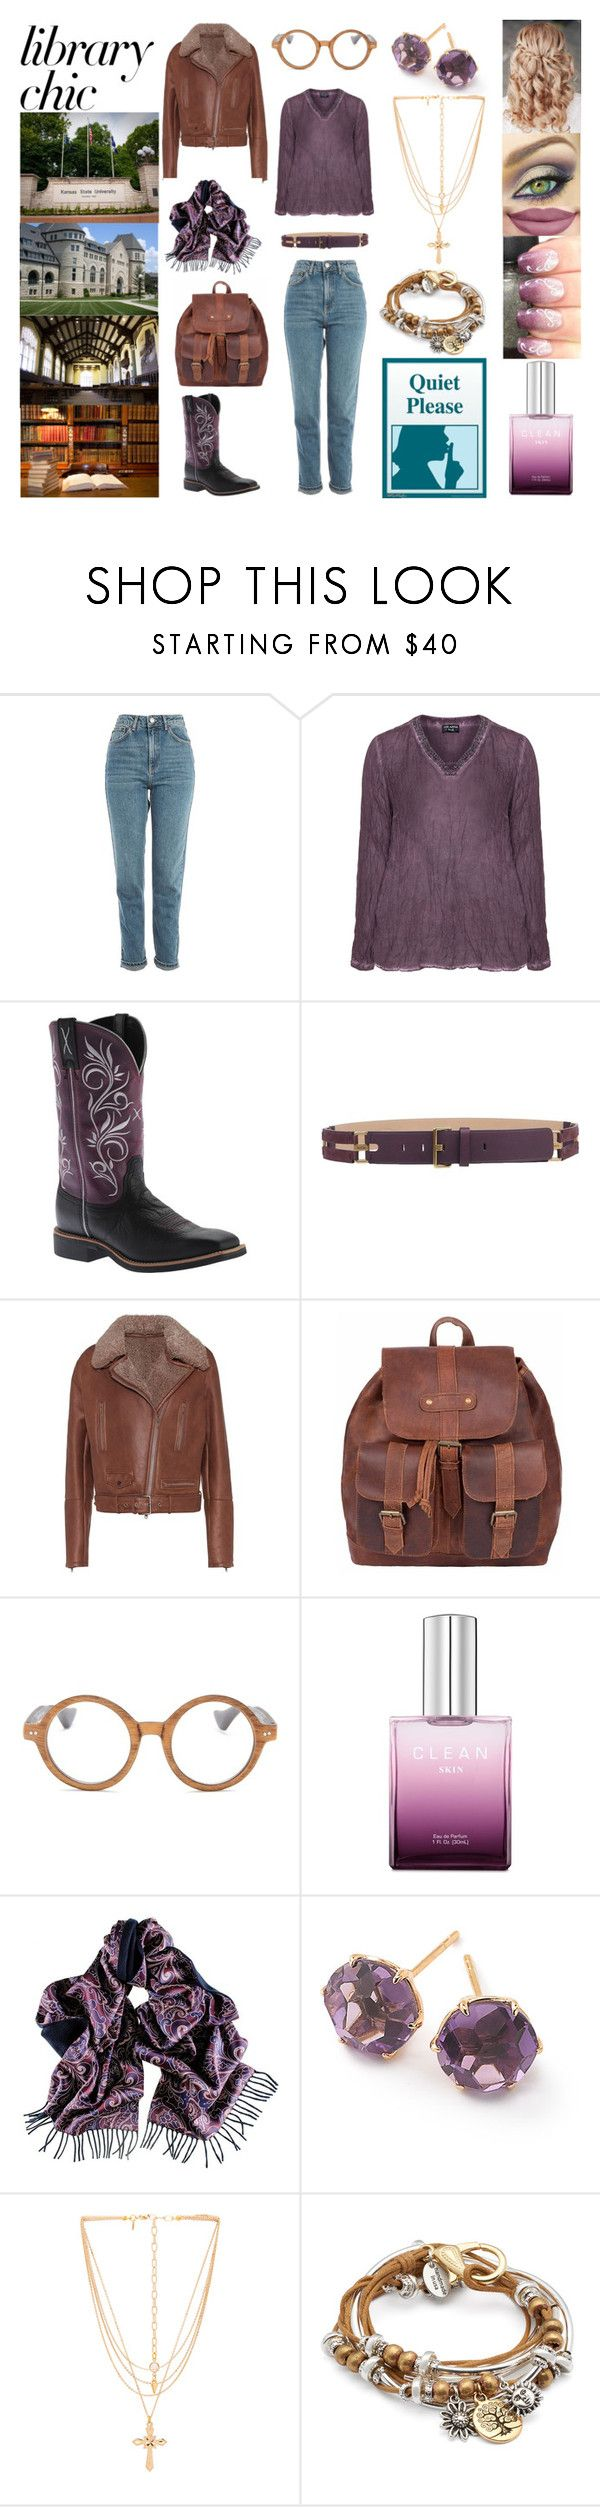 """Casual Library Style"" by bethnjulia ❤ liked on Polyvore featuring Topshop, Twisted X Boots, Tod's, Brunello Cucinelli, Ellen Tracy, Disney, Black, Ippolita, Vanessa Mooney and Lizzy James"